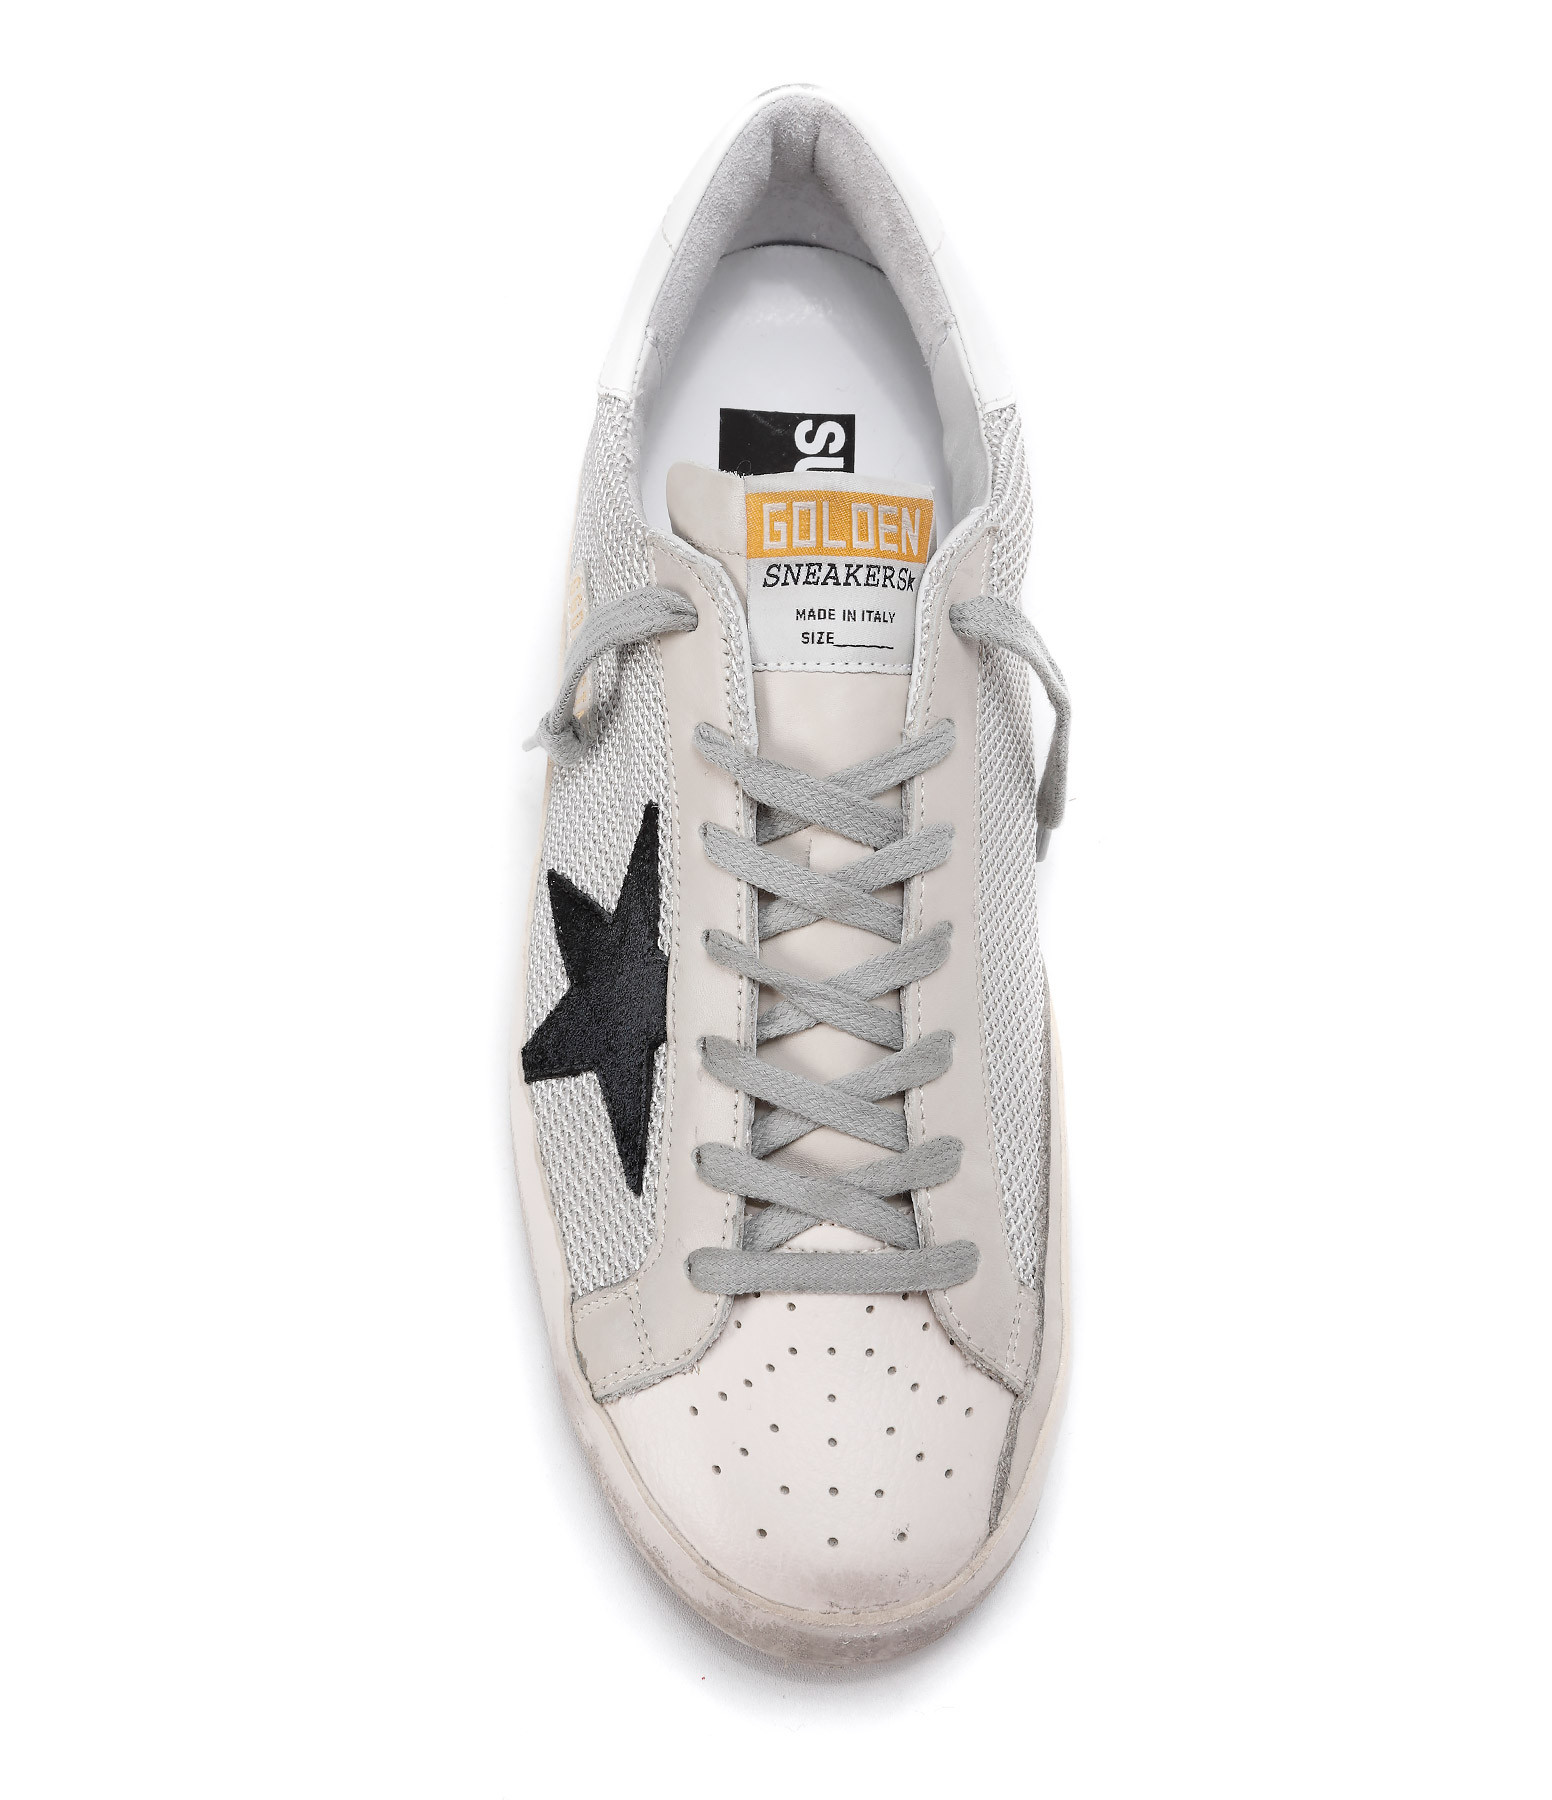 GOLDEN GOOSE - Baskets Sneakers Homme Superstar Cuir Grey Cord Gum